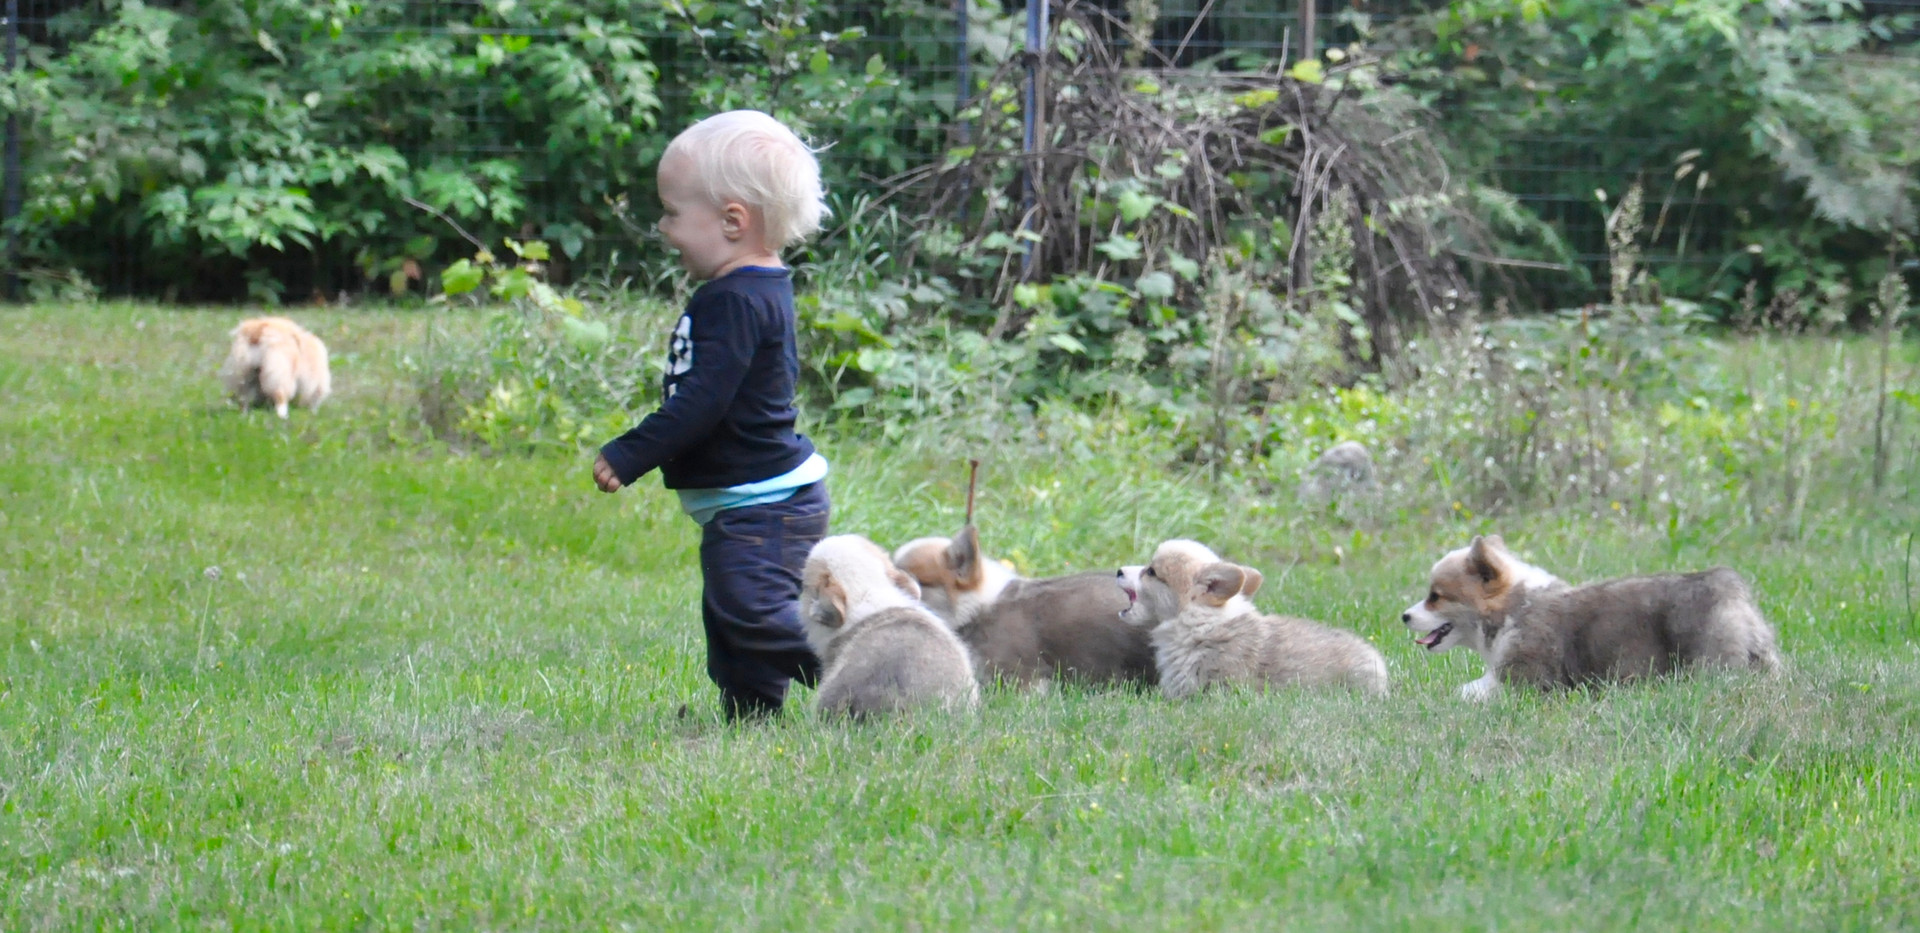 Mack with Fancy x Stetson Puppies